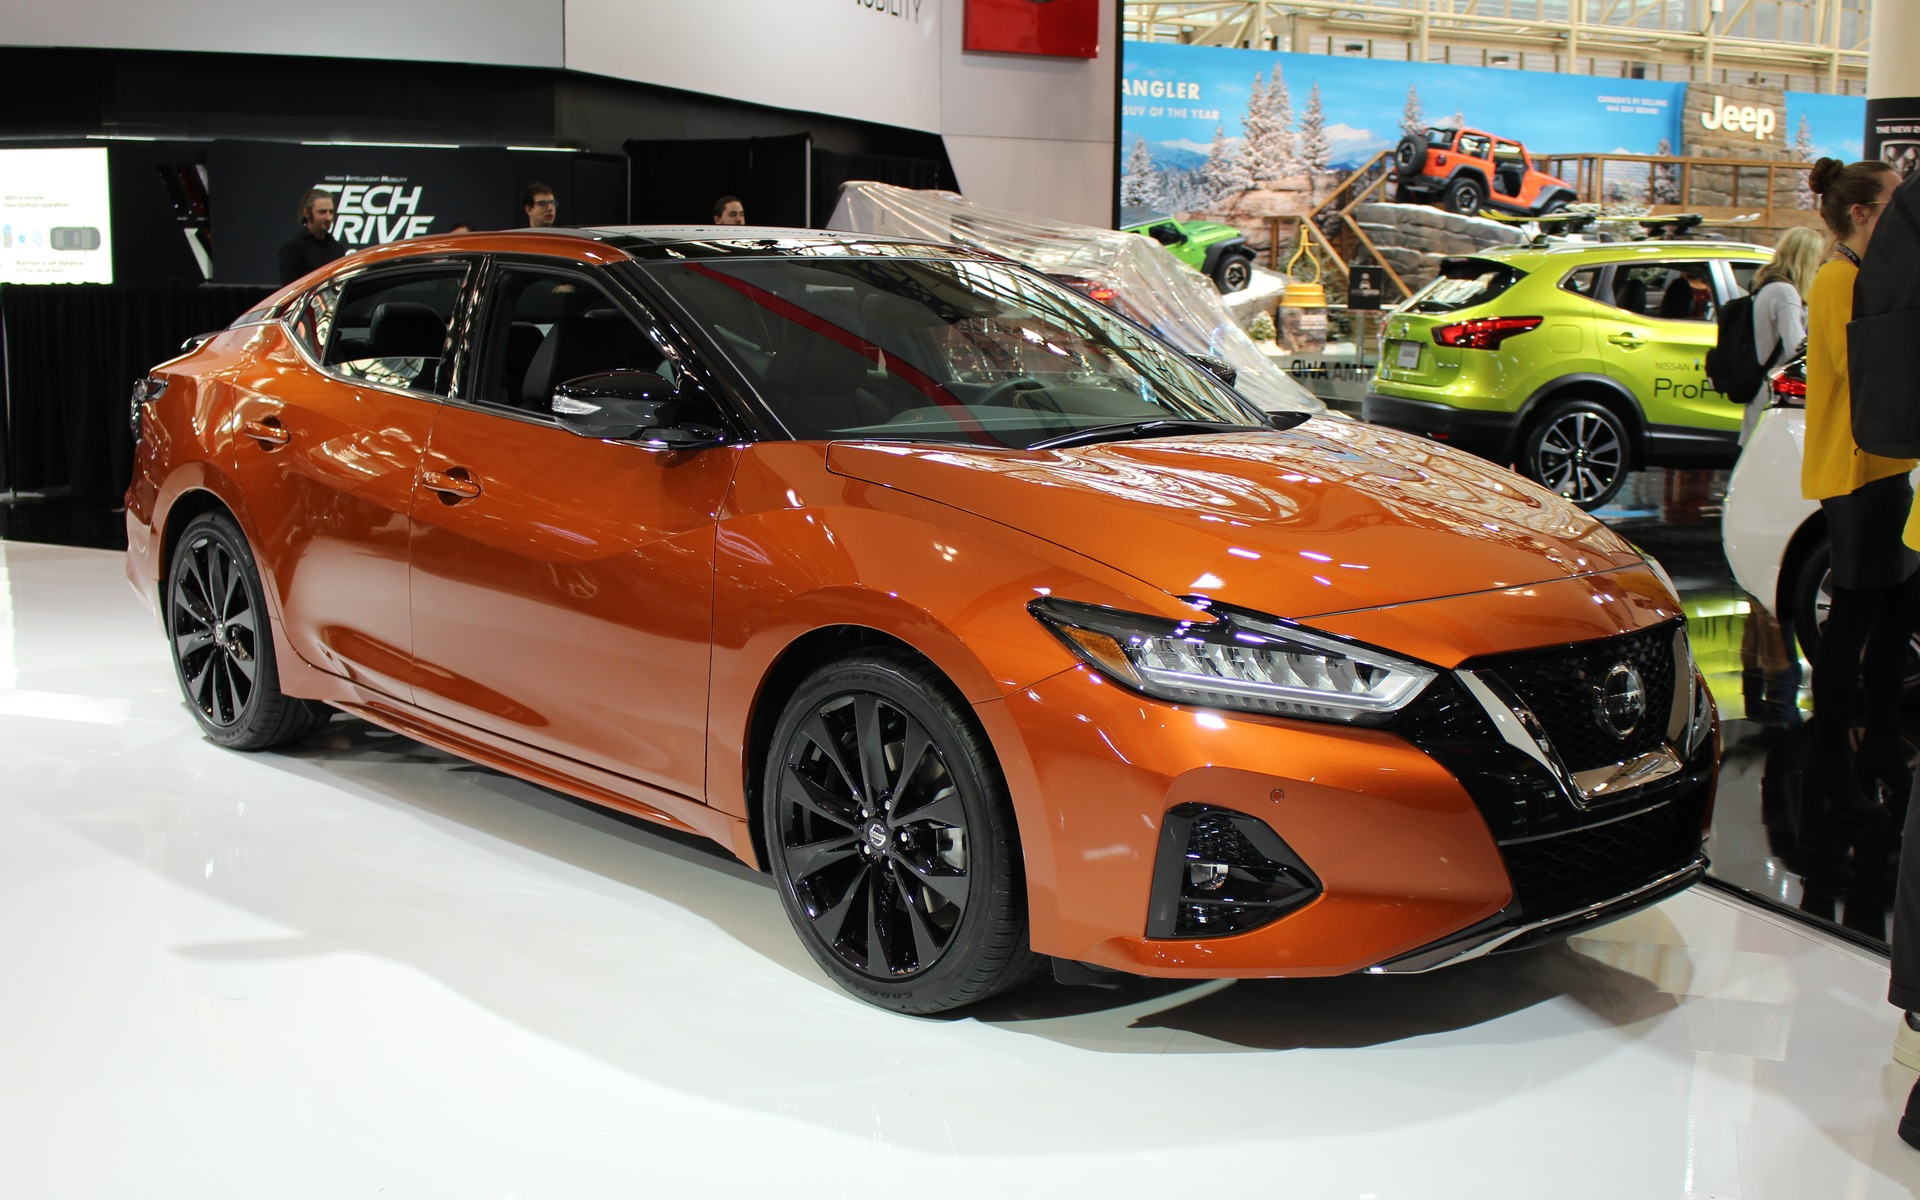 2019 Nissan Maxima And Pathfinder Rock Creek Edition Debut In Toronto The Car Guide